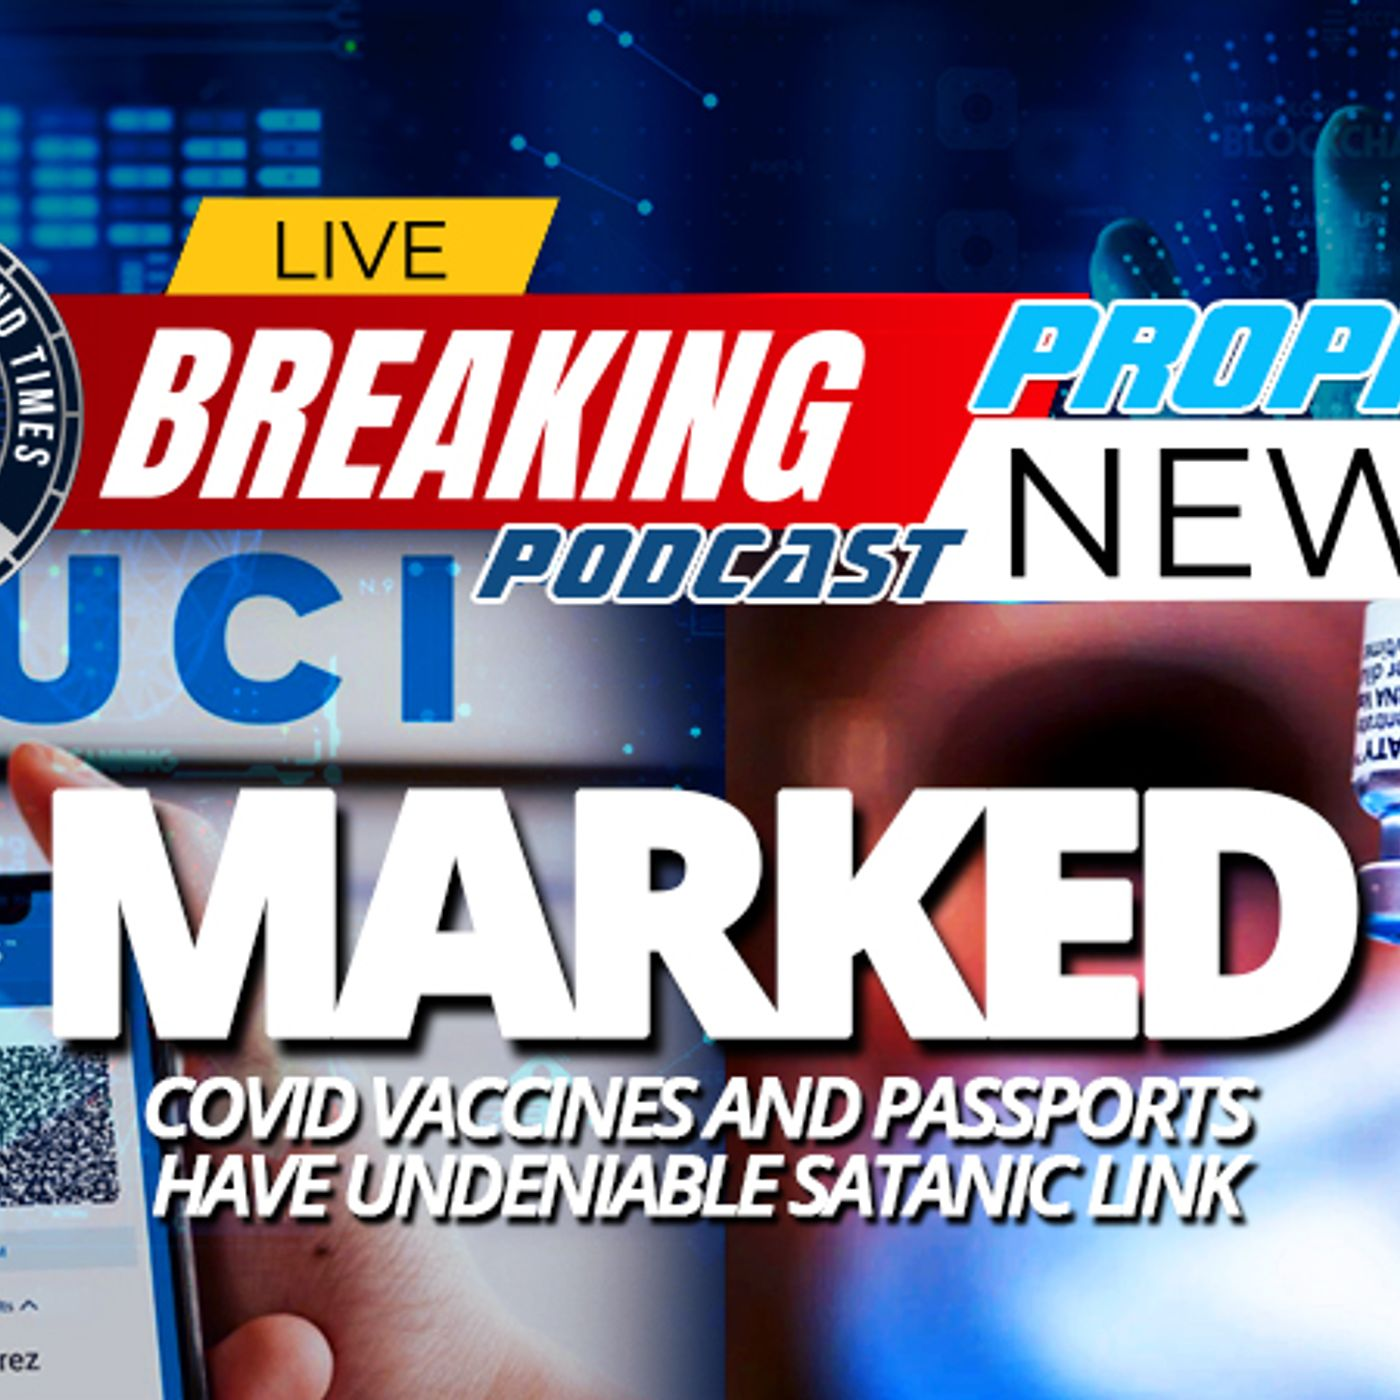 NTEB PROPHECY NEWS PODCAST: The COVID Vaccines And The Vaccine Passports Have A Stunning Connection To The Coming Antichrist And 666